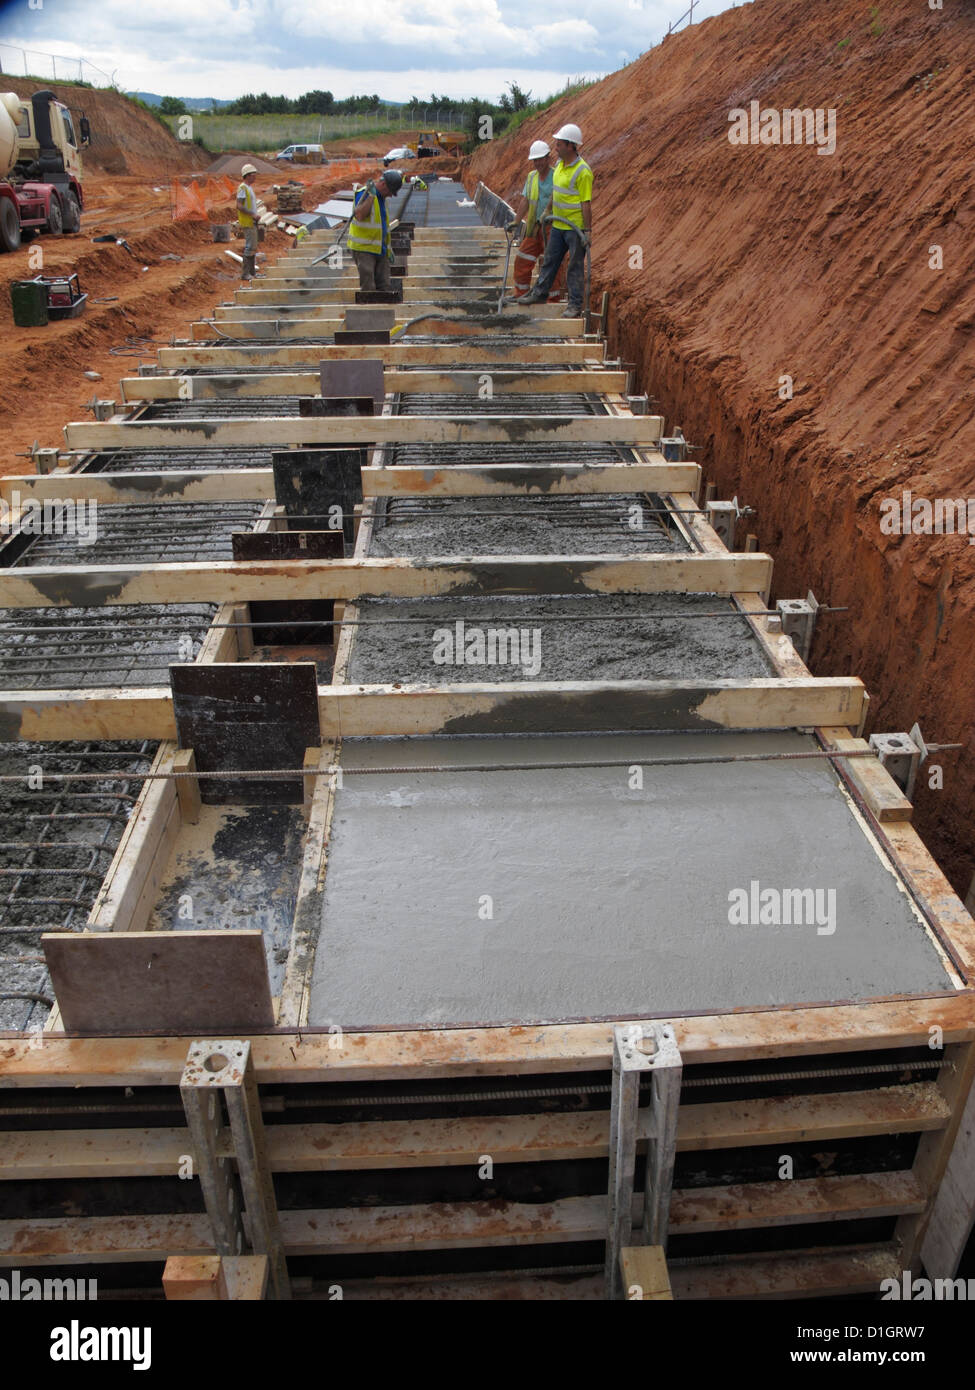 Pouring concrete for a reinforced concrete bridge foundation strip footing uk - Stock Image